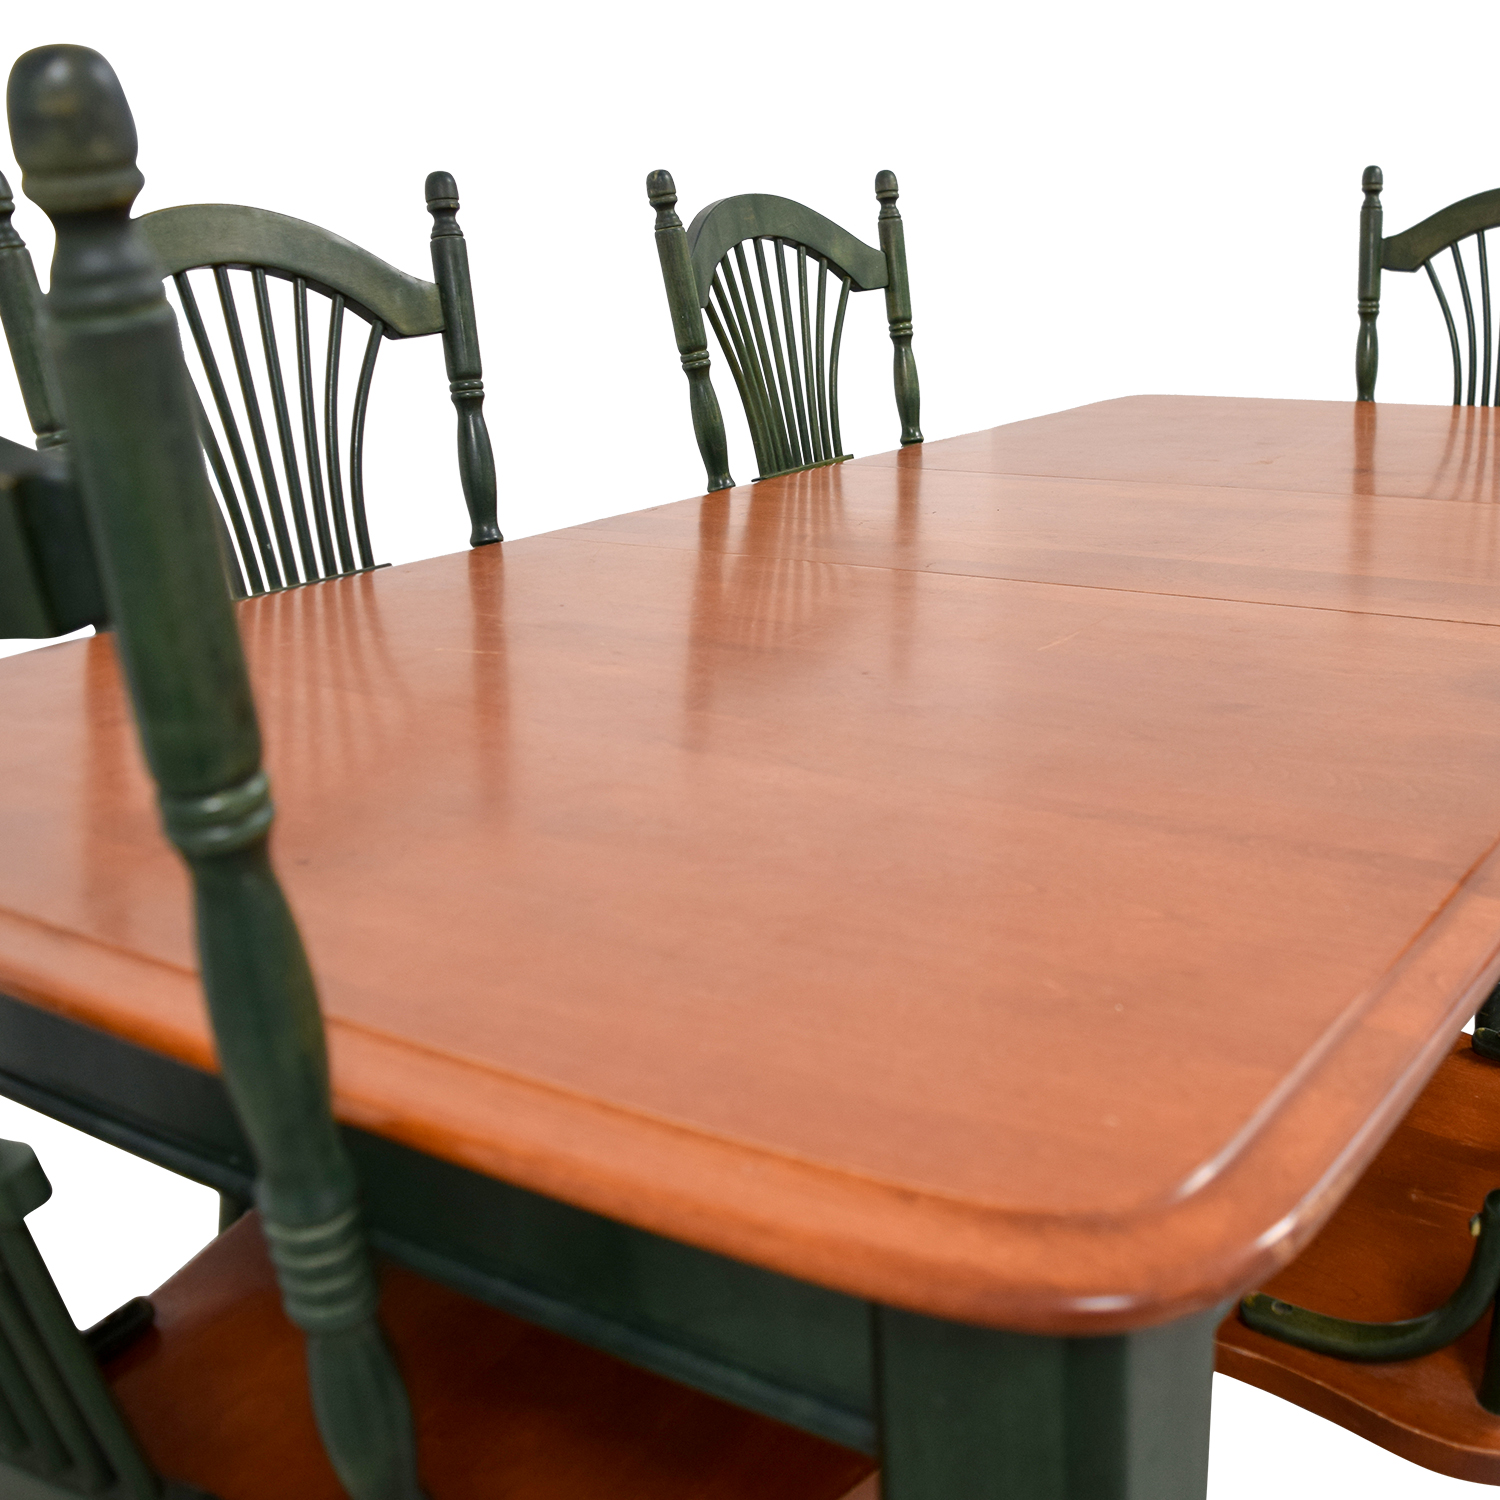 Dining Table with Extension Leaf and Green Chairs nyc